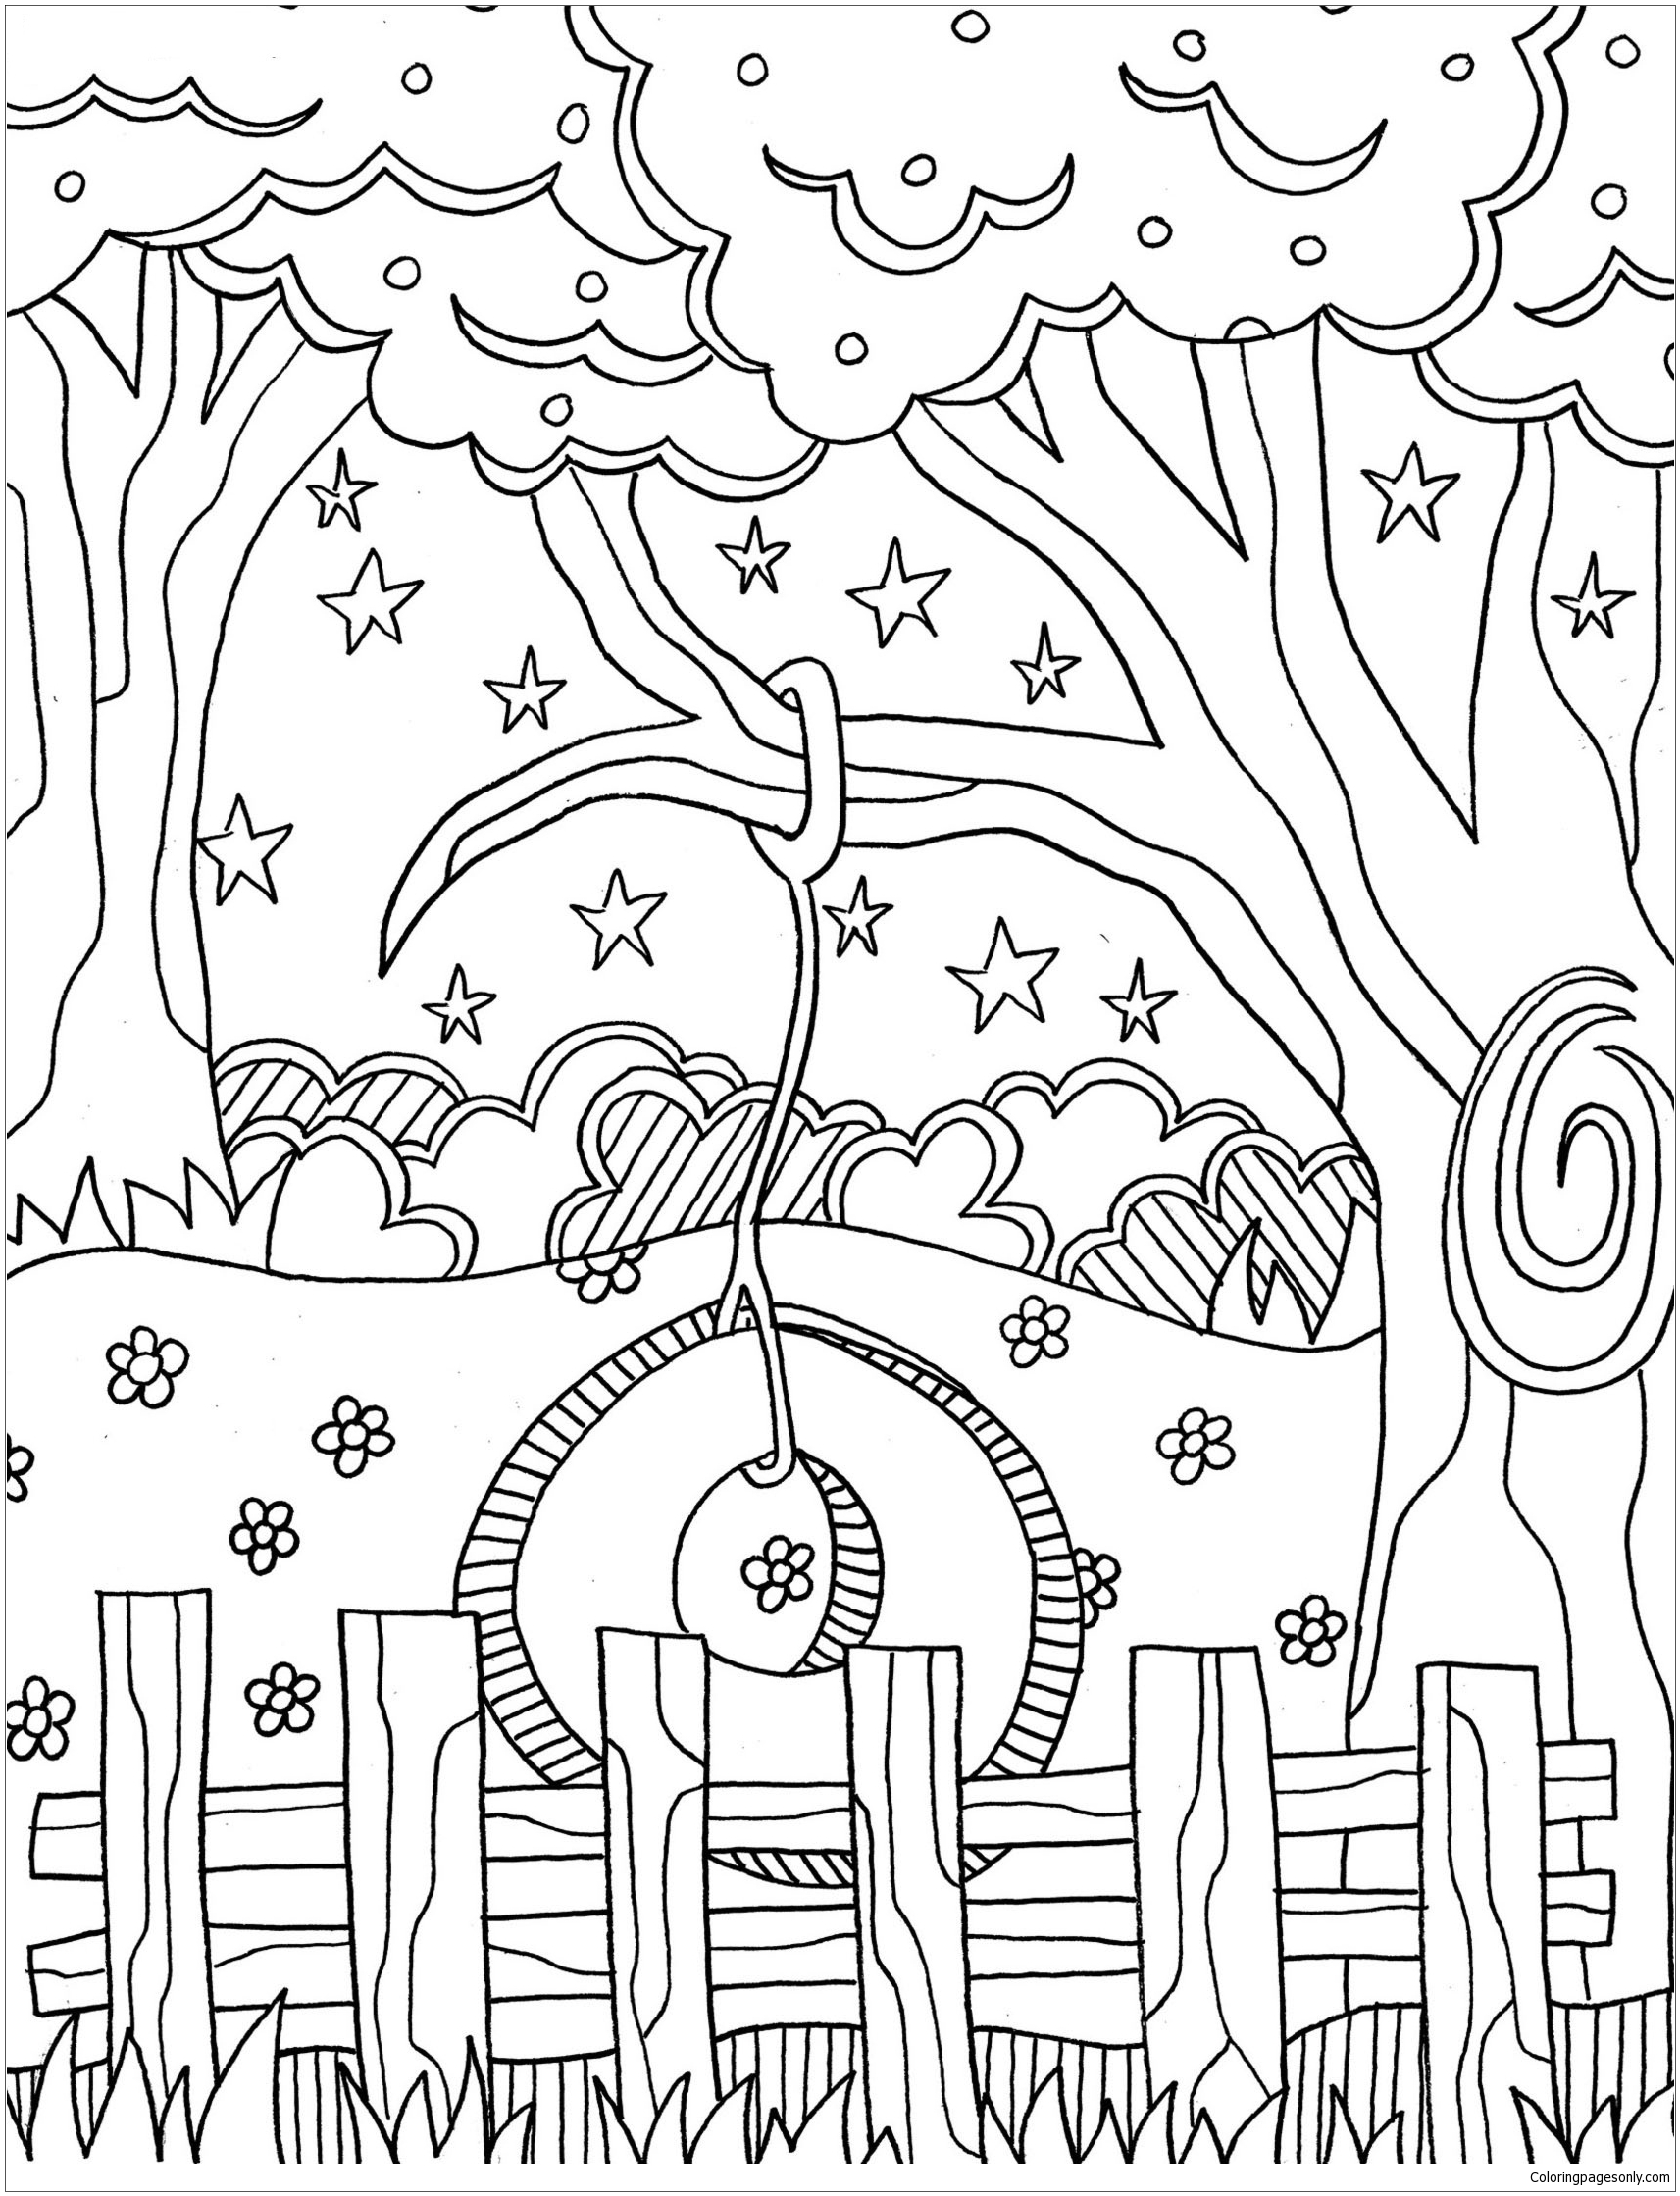 Tire Swing Coloring Page